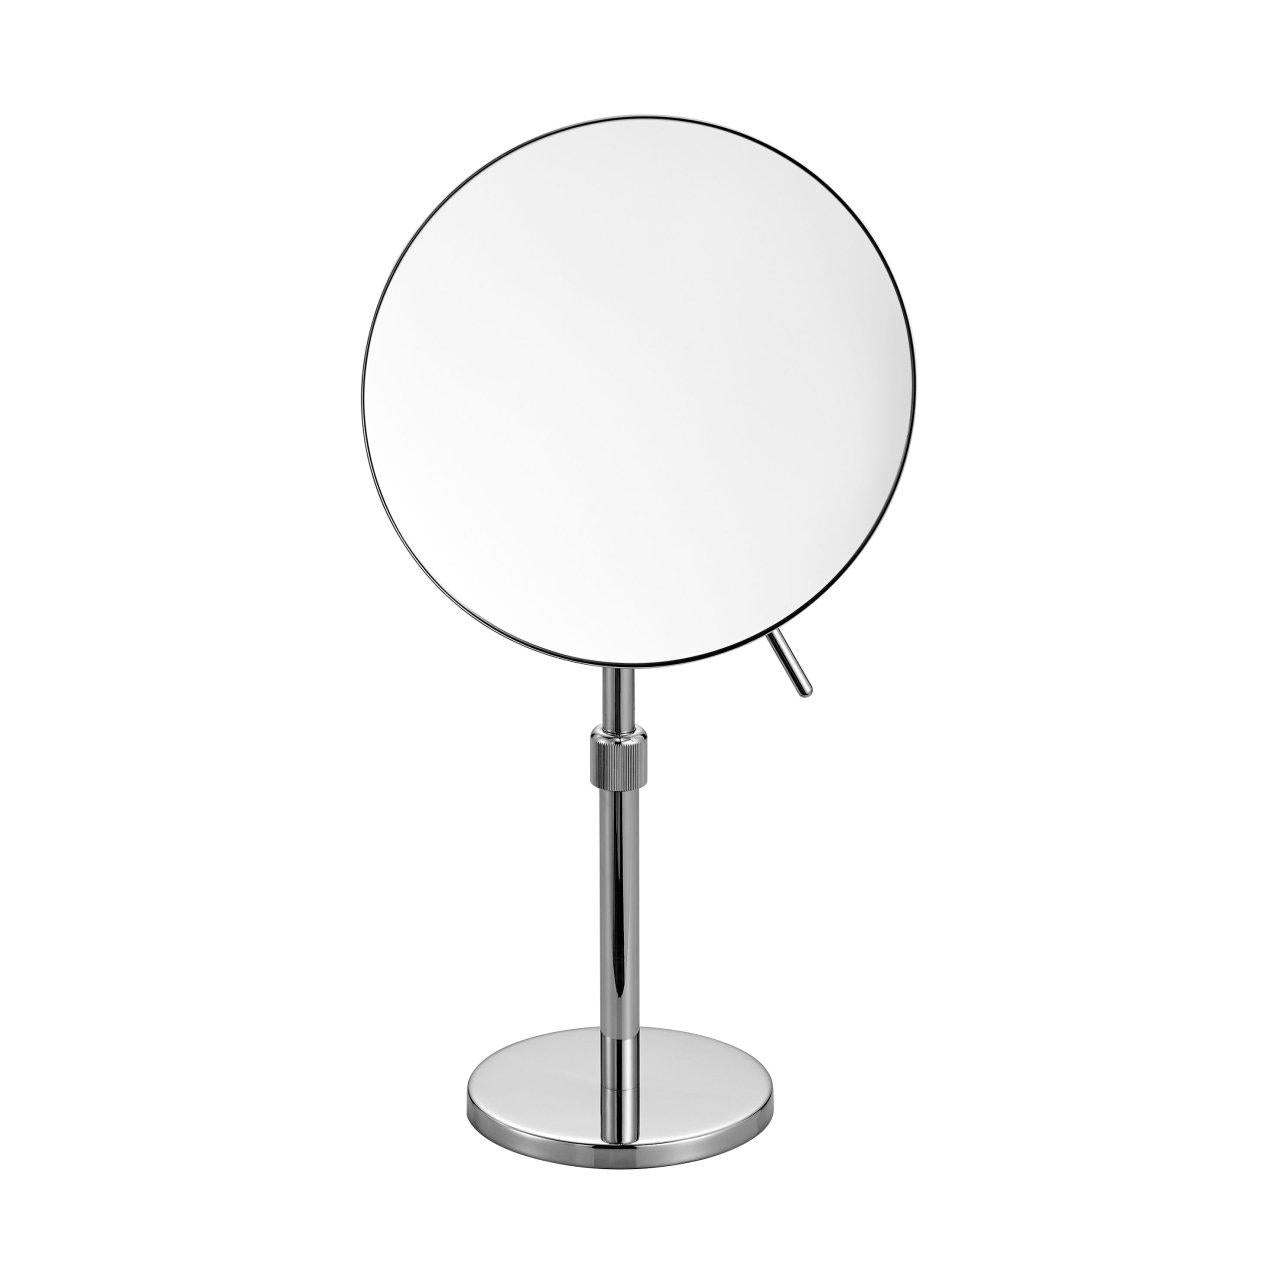 KubeBath Aqua Rondo by KubeBath Magnifying Mirror With Adjustable Height, 8167